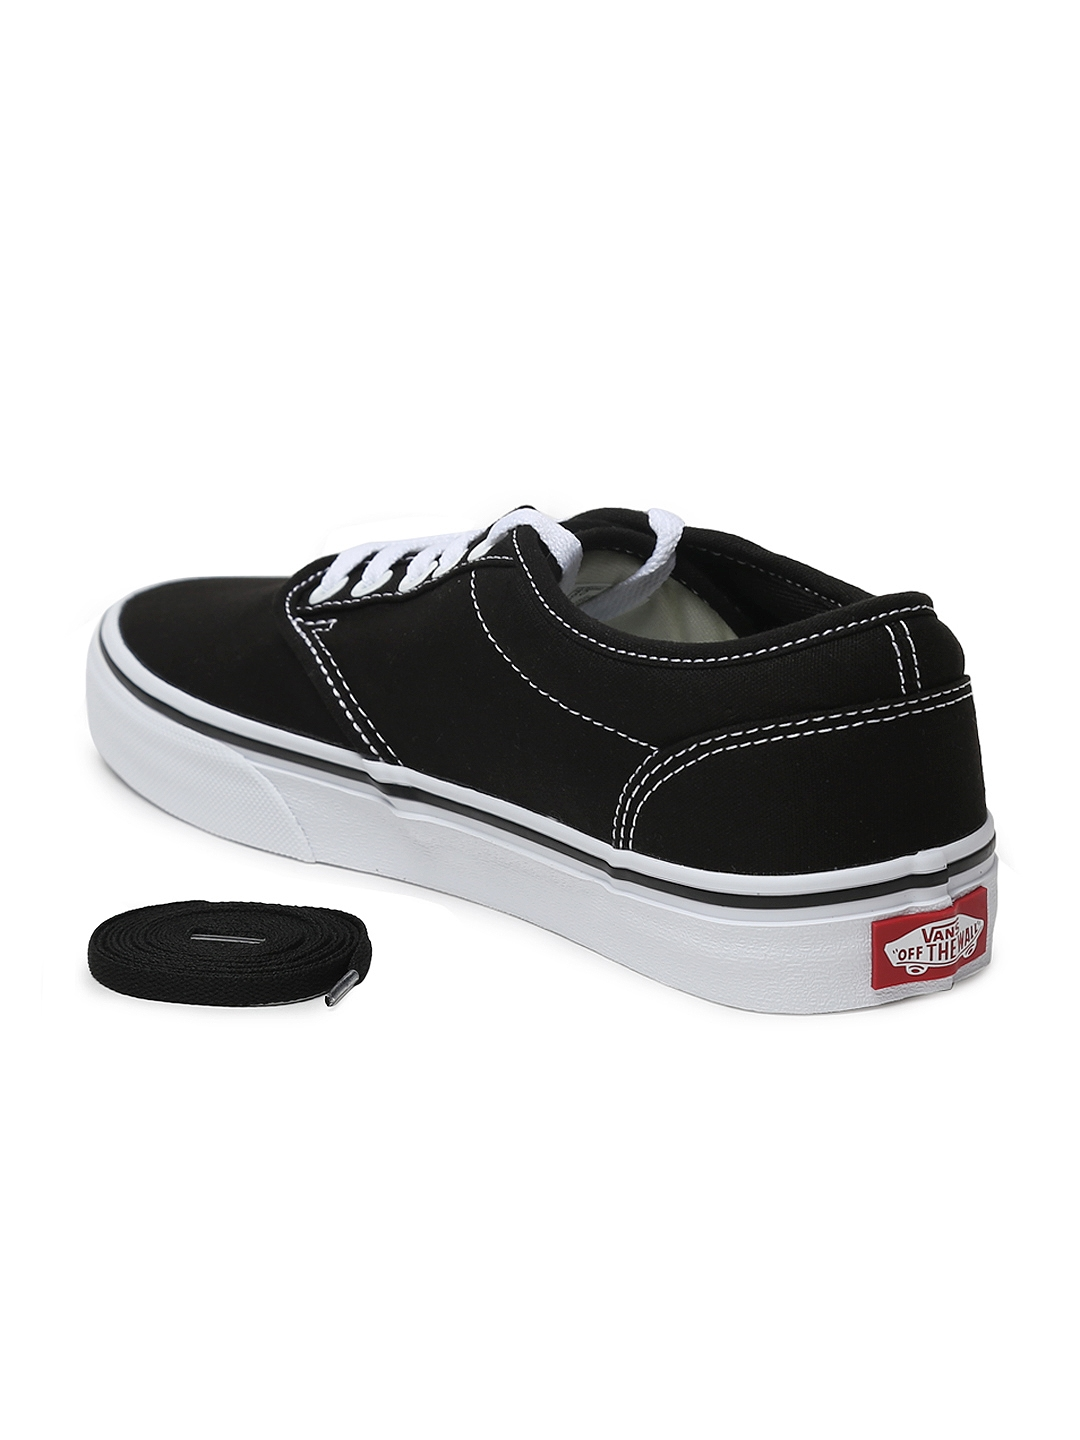 1f0d503b11ead Buy Vans Women Black Atwood Sneakers - Casual Shoes for Women ...